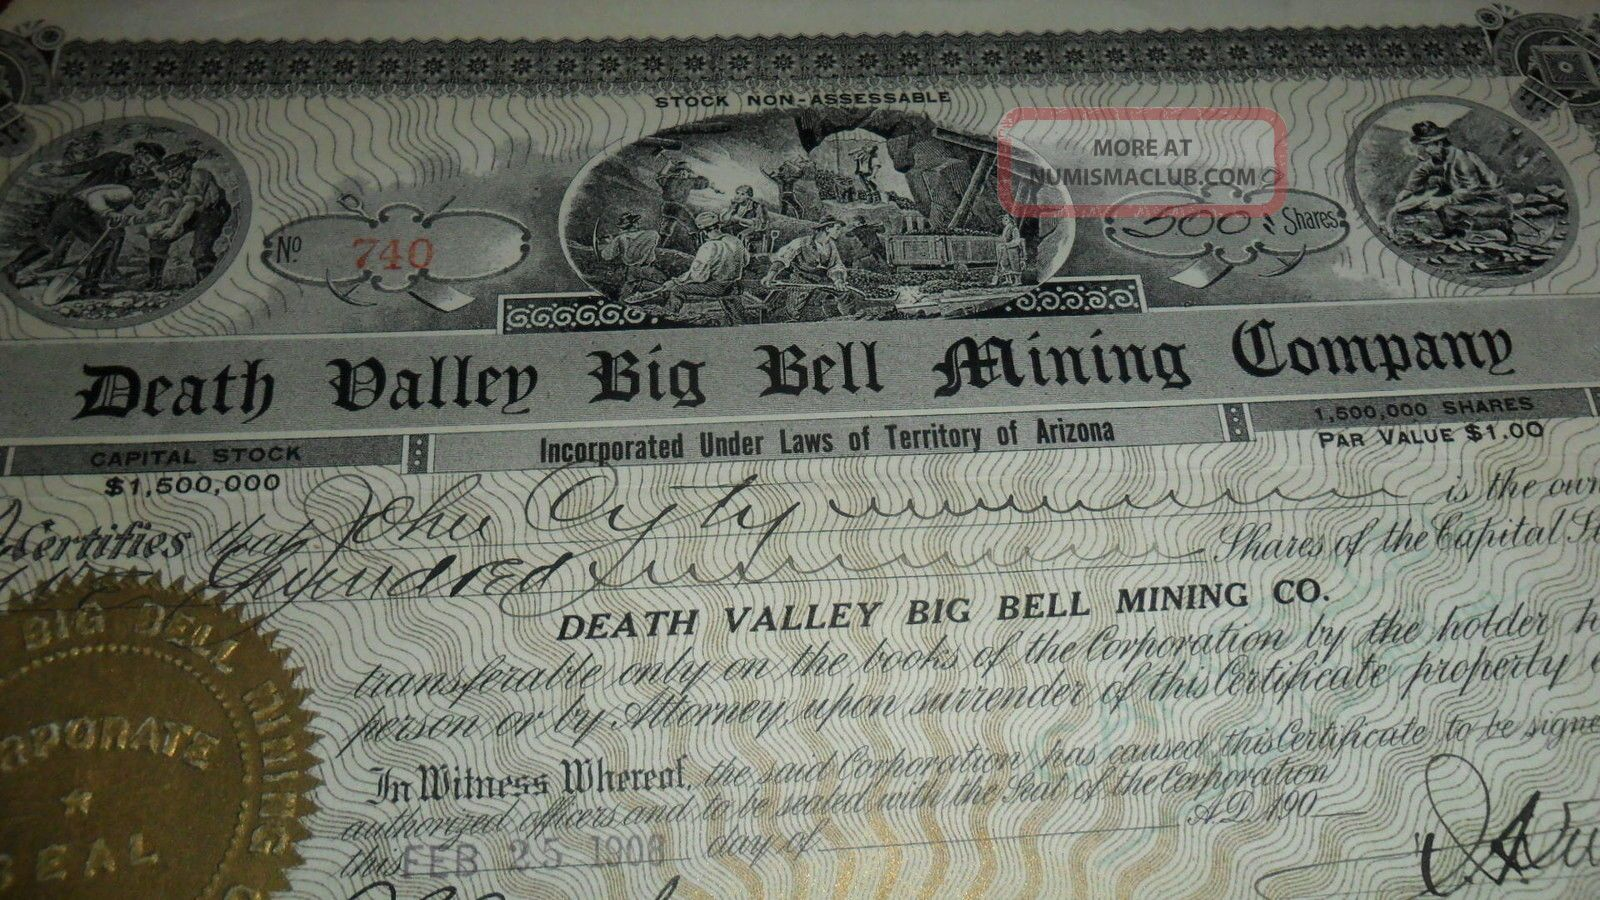 1908 740 Death Valley Big Bell Mining Company - Rare Signed Stock Certificate Stocks & Bonds, Scripophily photo